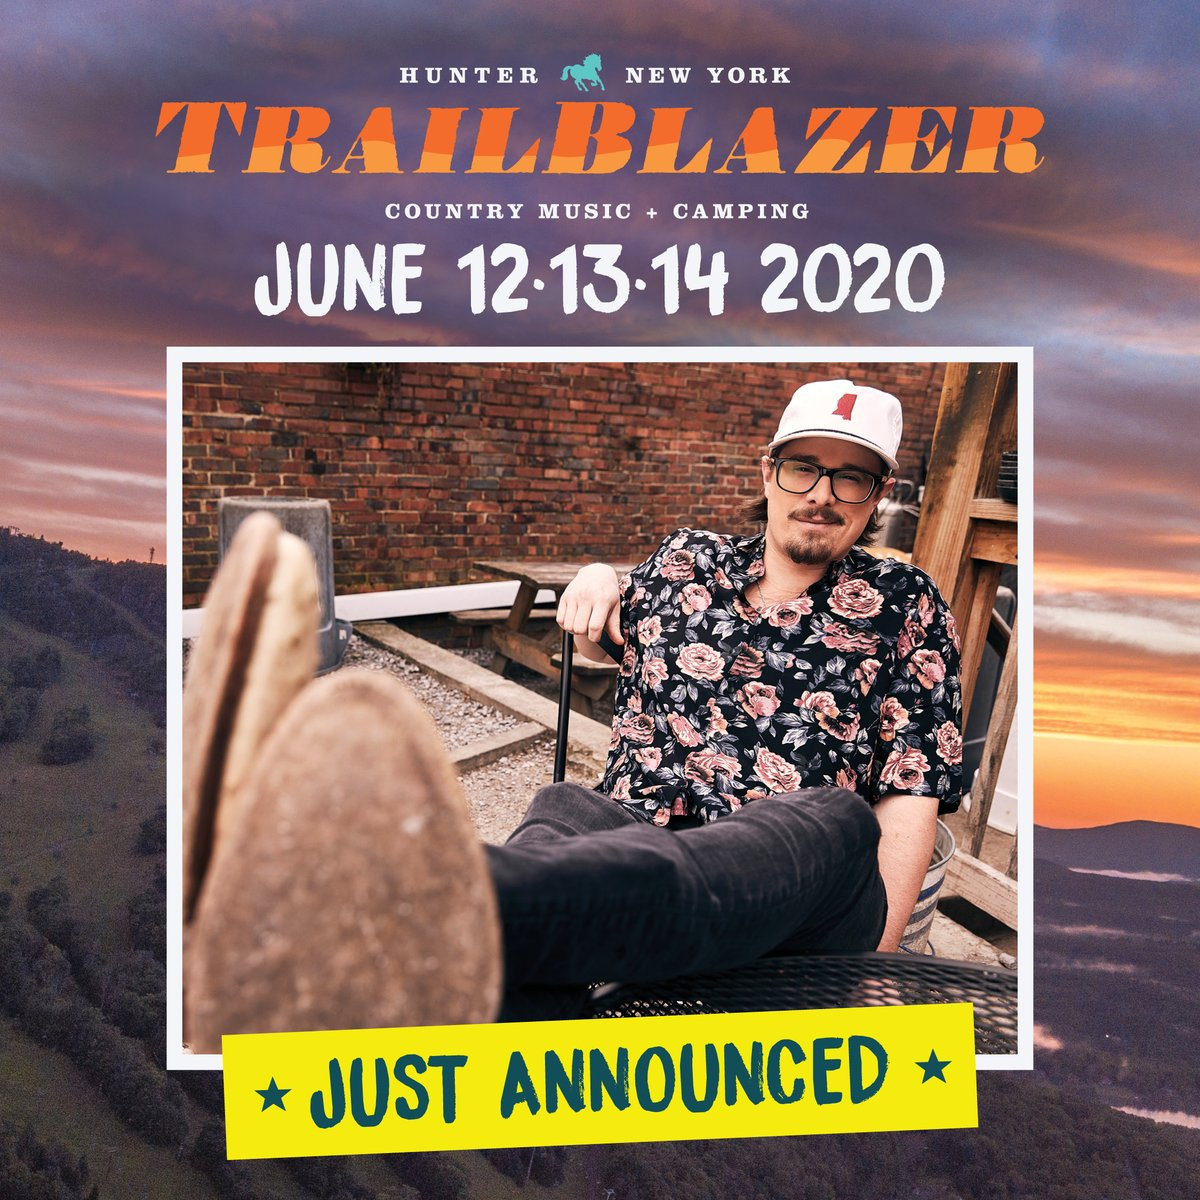 See y'all at the @trailblazerfest at Hunter Mountain in the Catskills this June! Grab your passes Fri, Dec 13 at 10am ET🎟: http://bit.ly/TrailBlazerFestival …